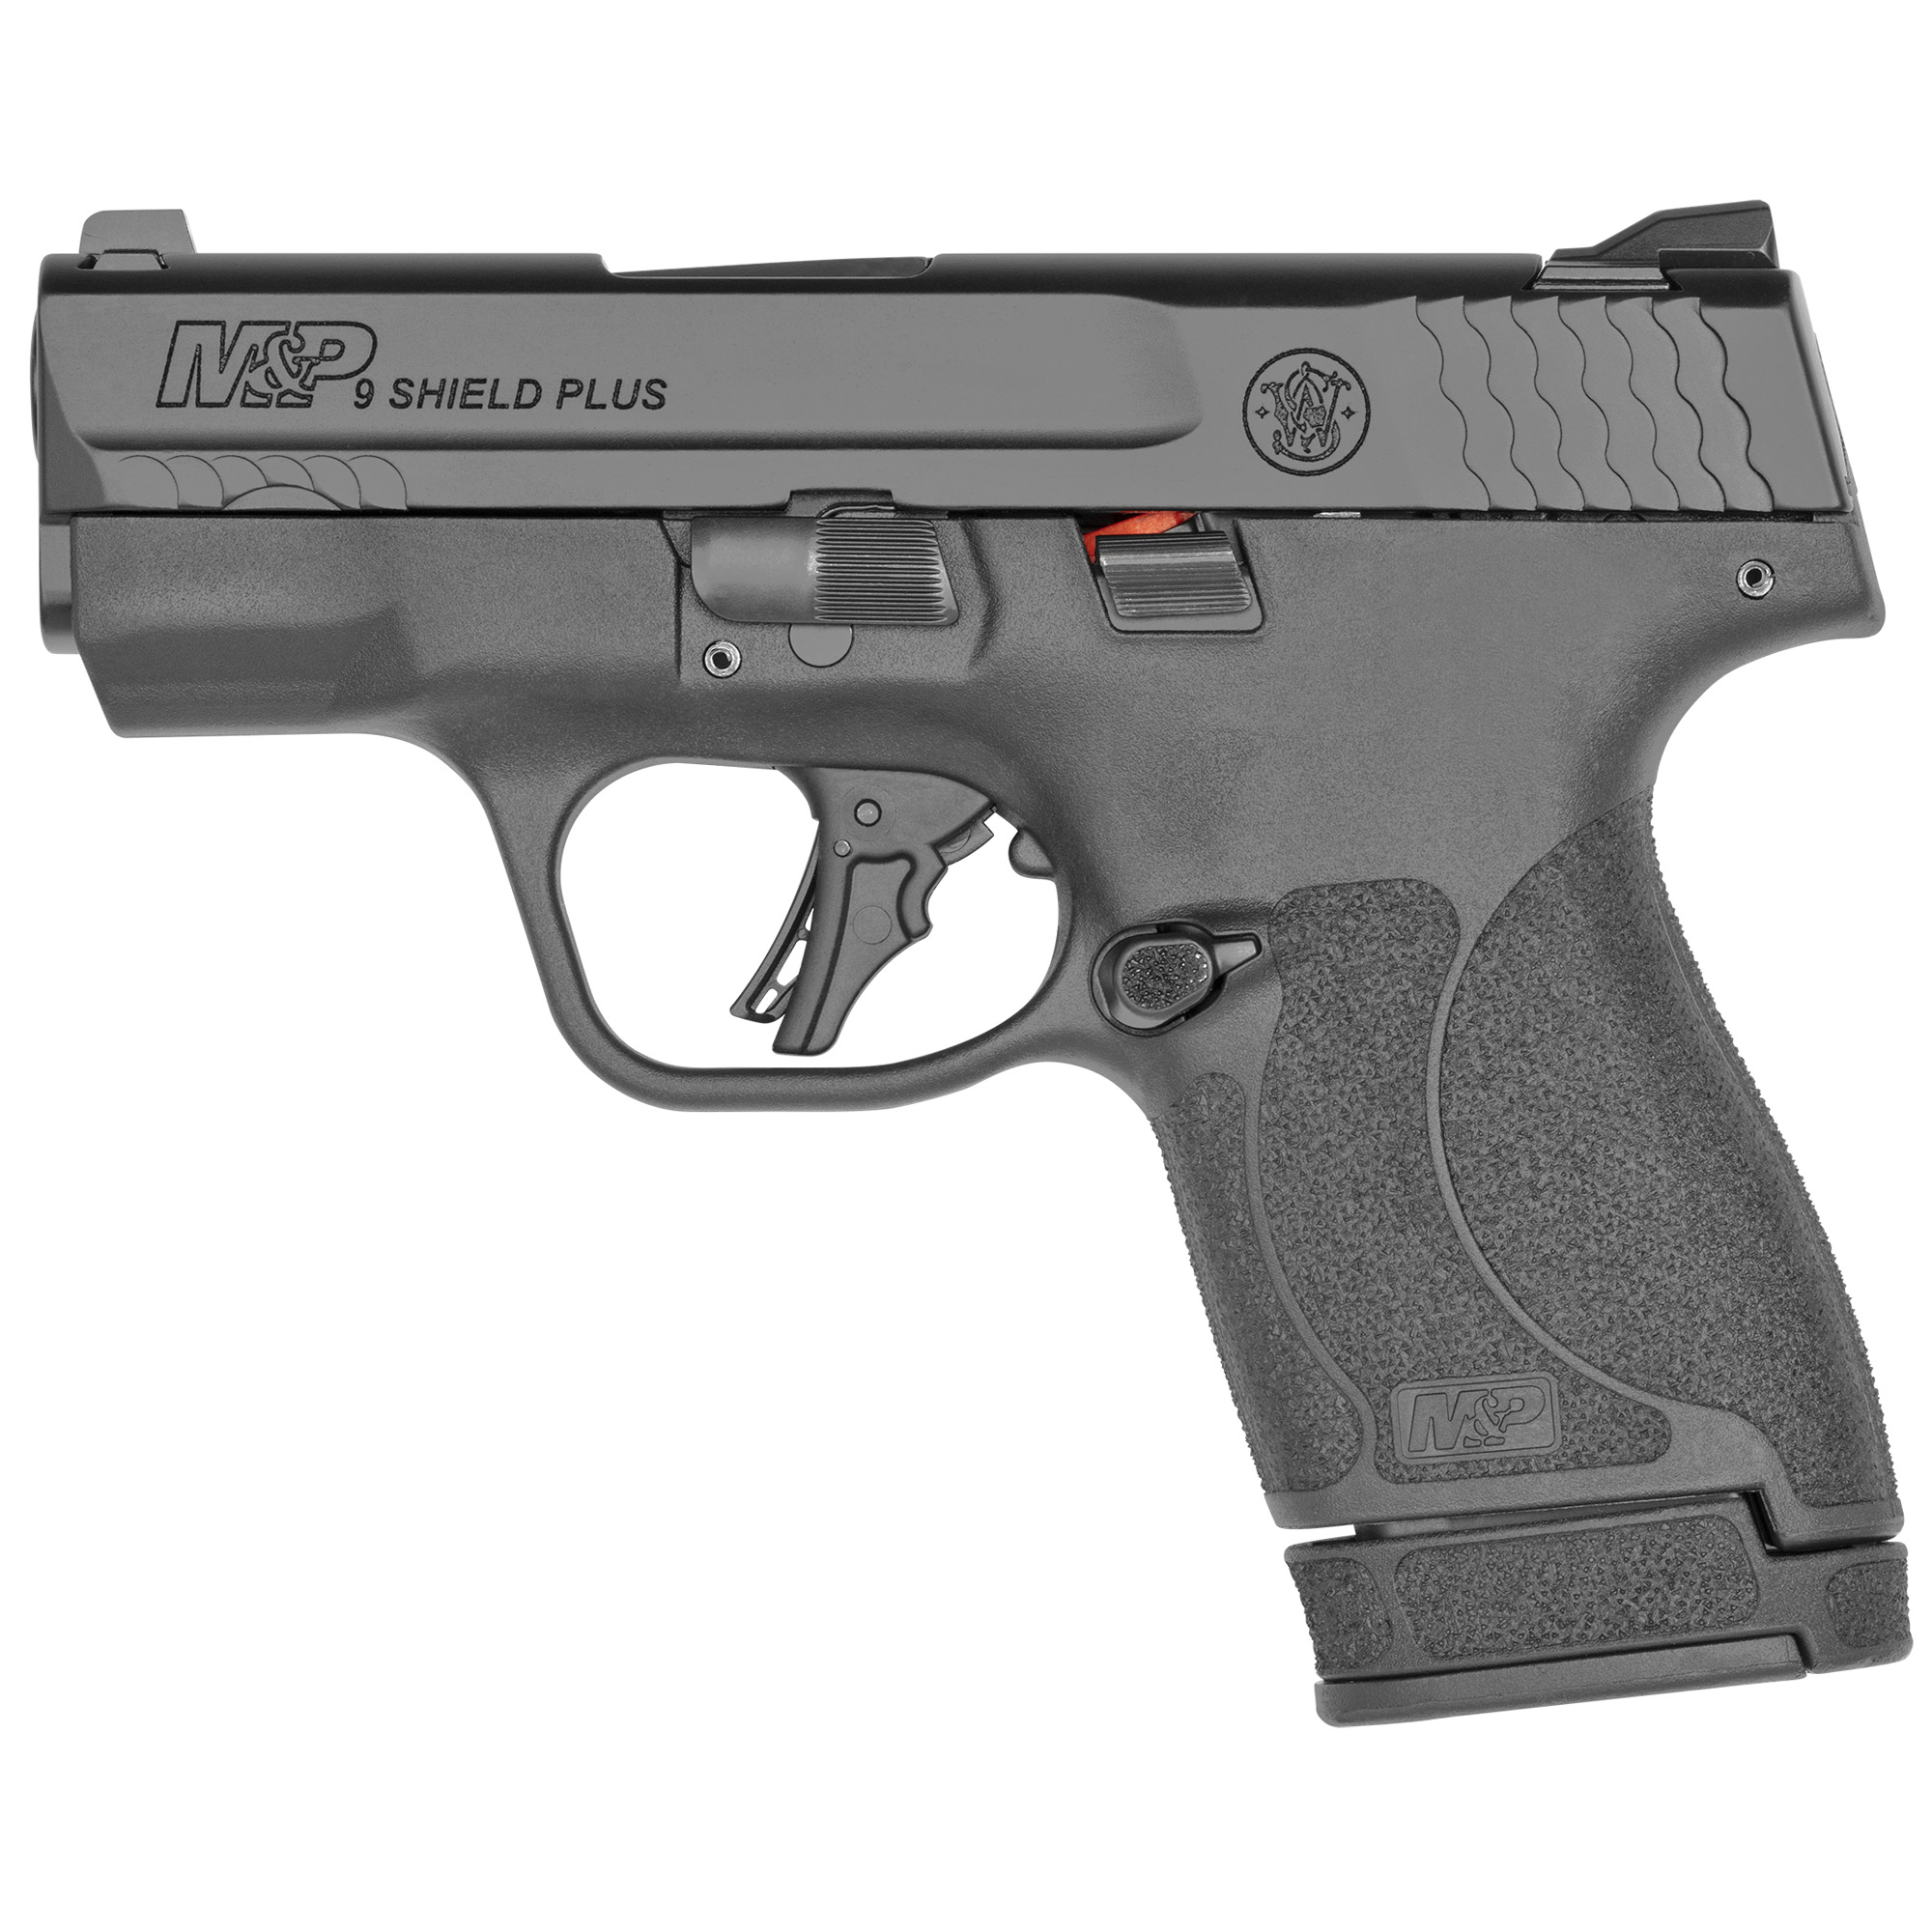 NEW Smith & Wesson M&P 9 Shield Plus subcompact just $550 out-the-door!!!